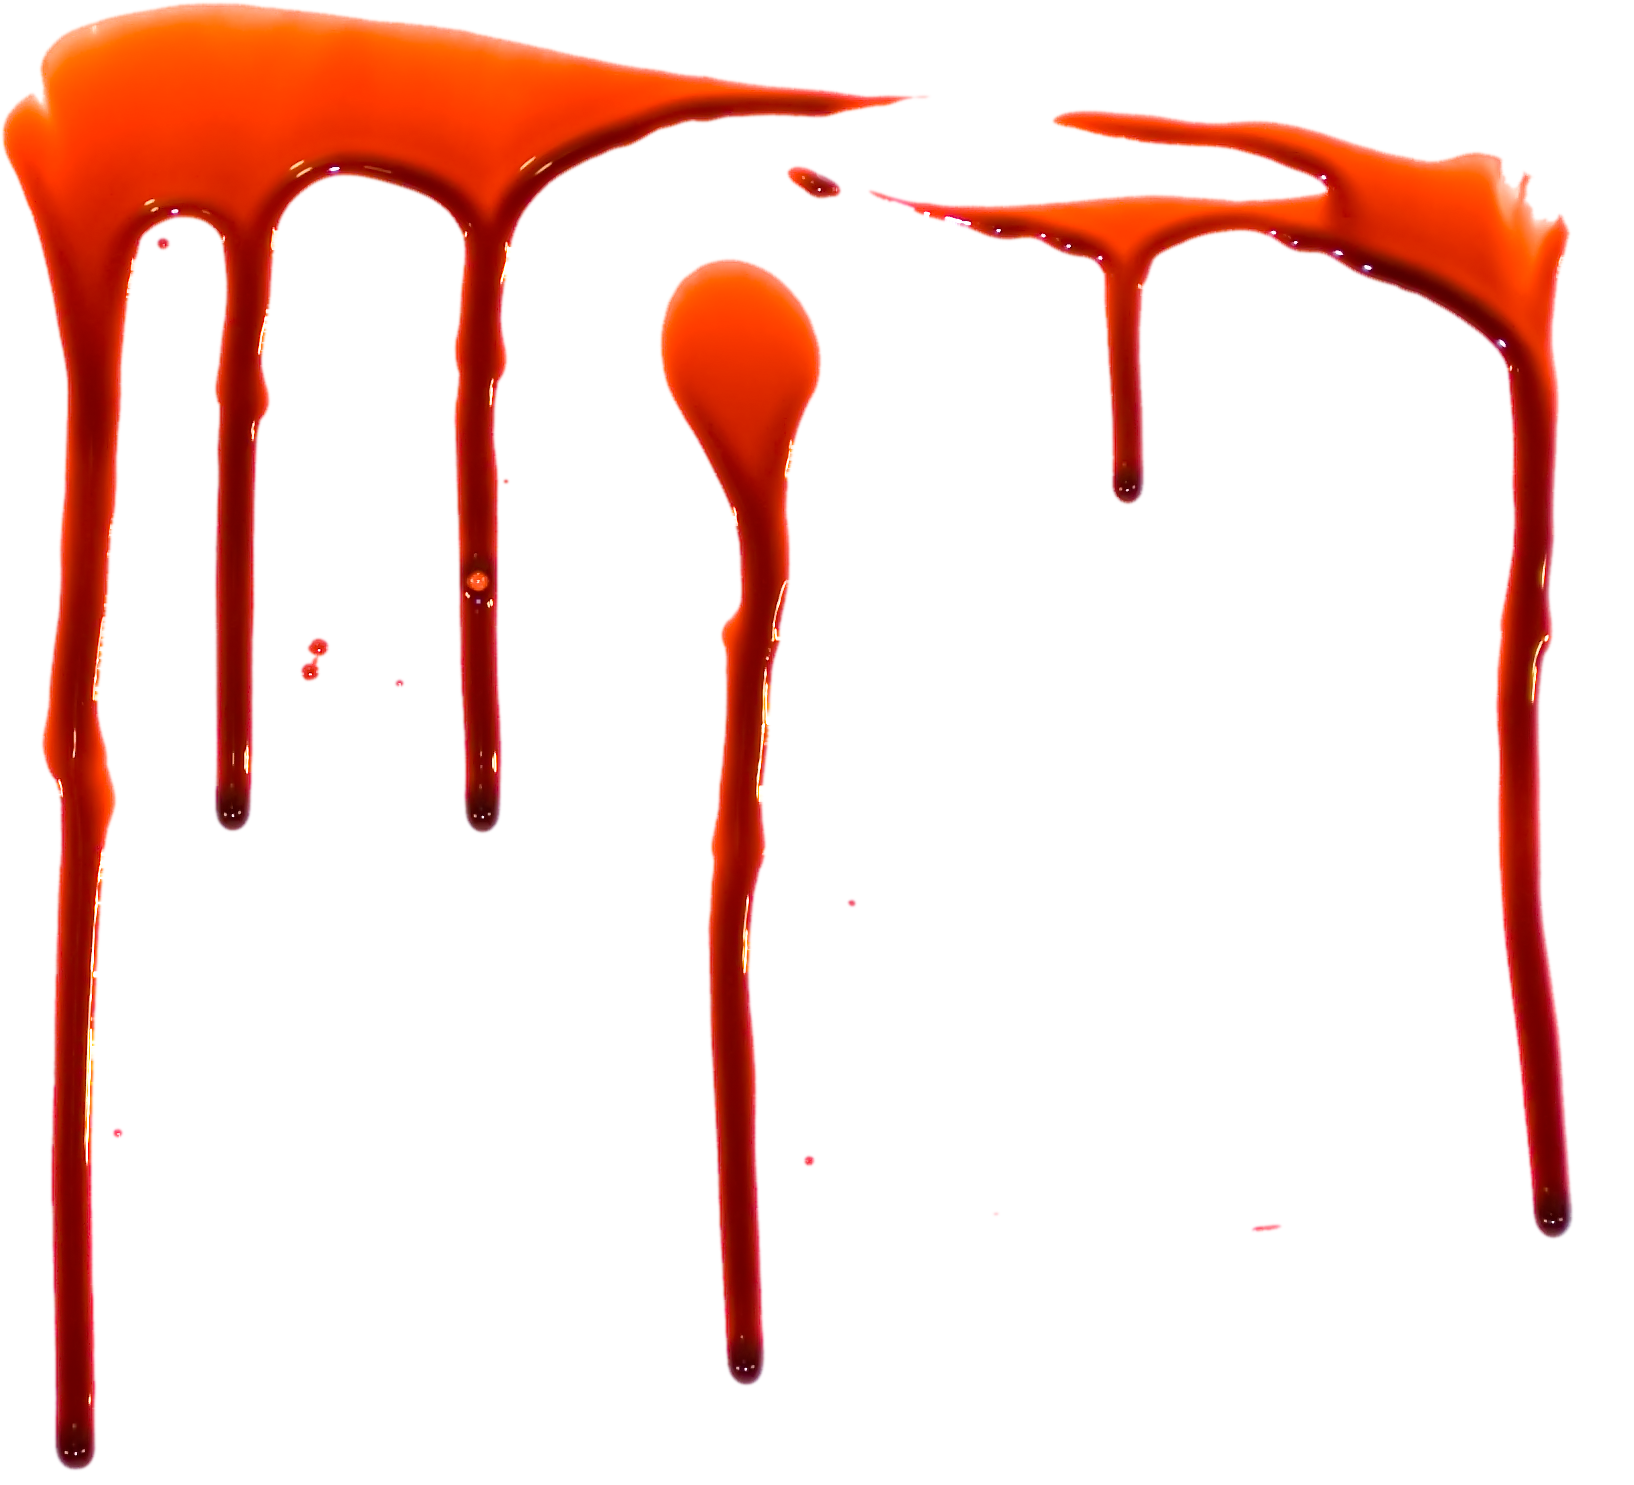 Dripping transparent images pluspng. Realistic blood drip png